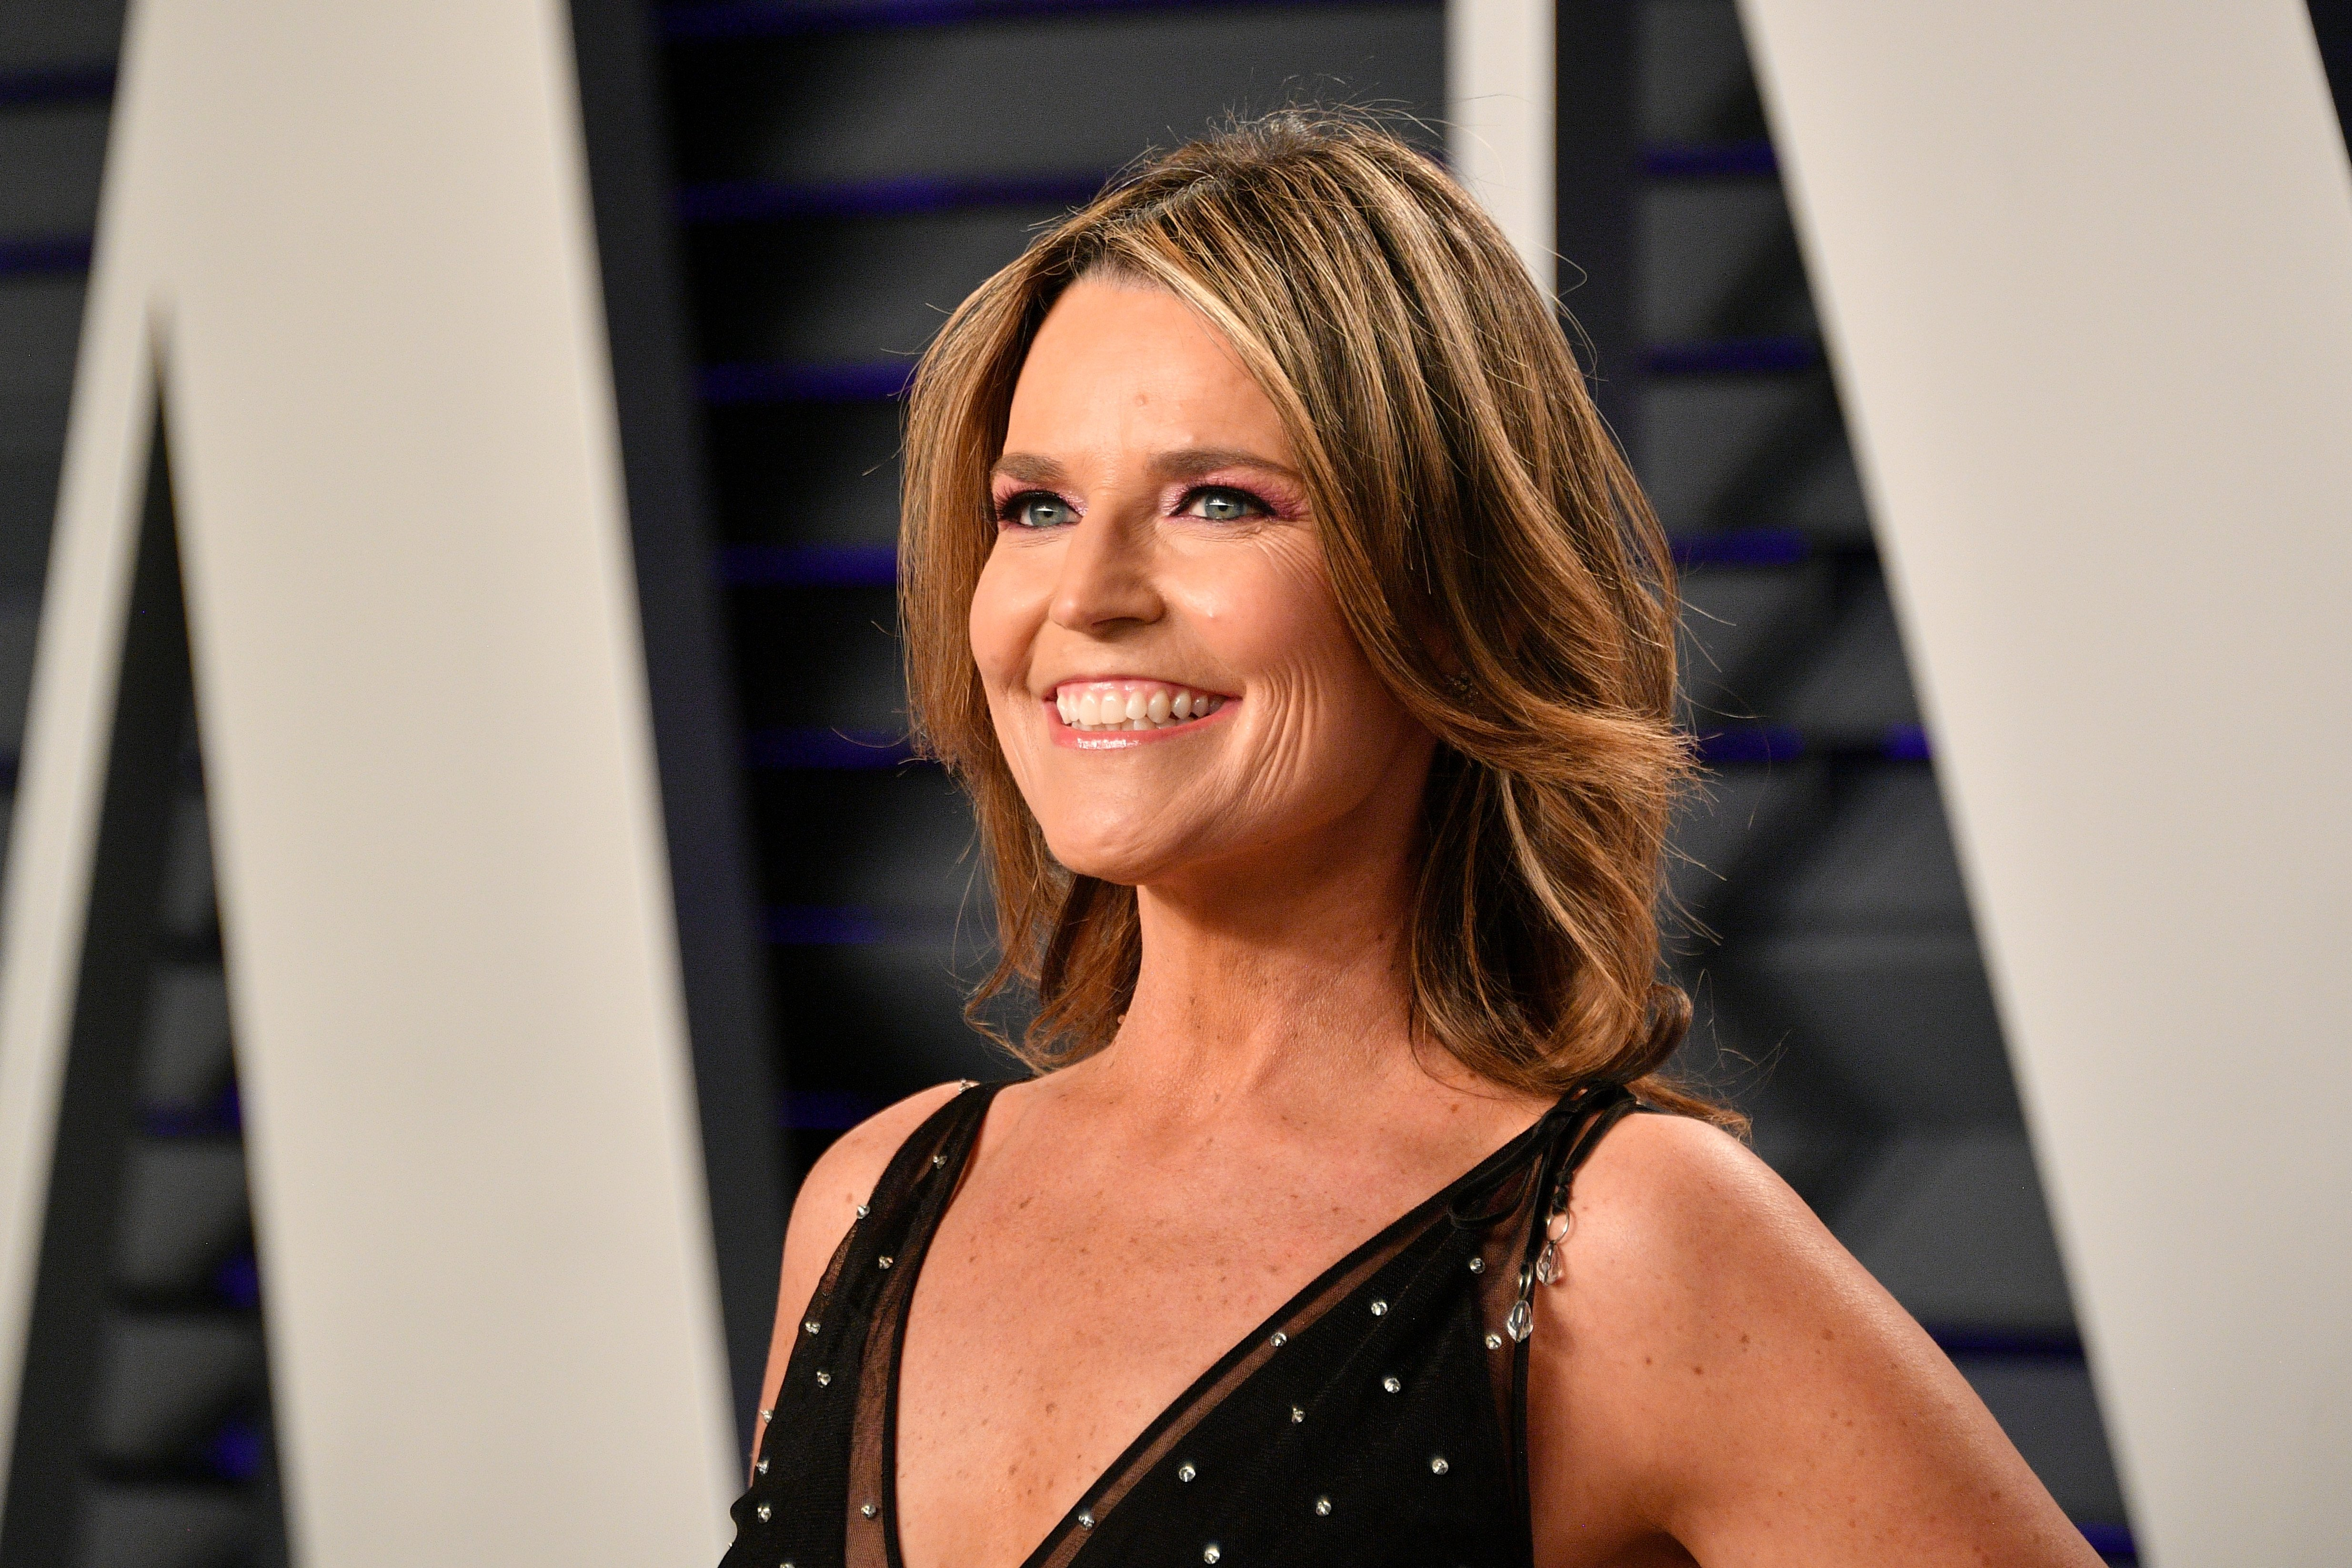 Savannah Guthrie attends the 2019 Vanity Fair Oscar Party at Wallis Annenberg Center on February 24, 2019 in Beverly Hills, California | Photo: Getty Images